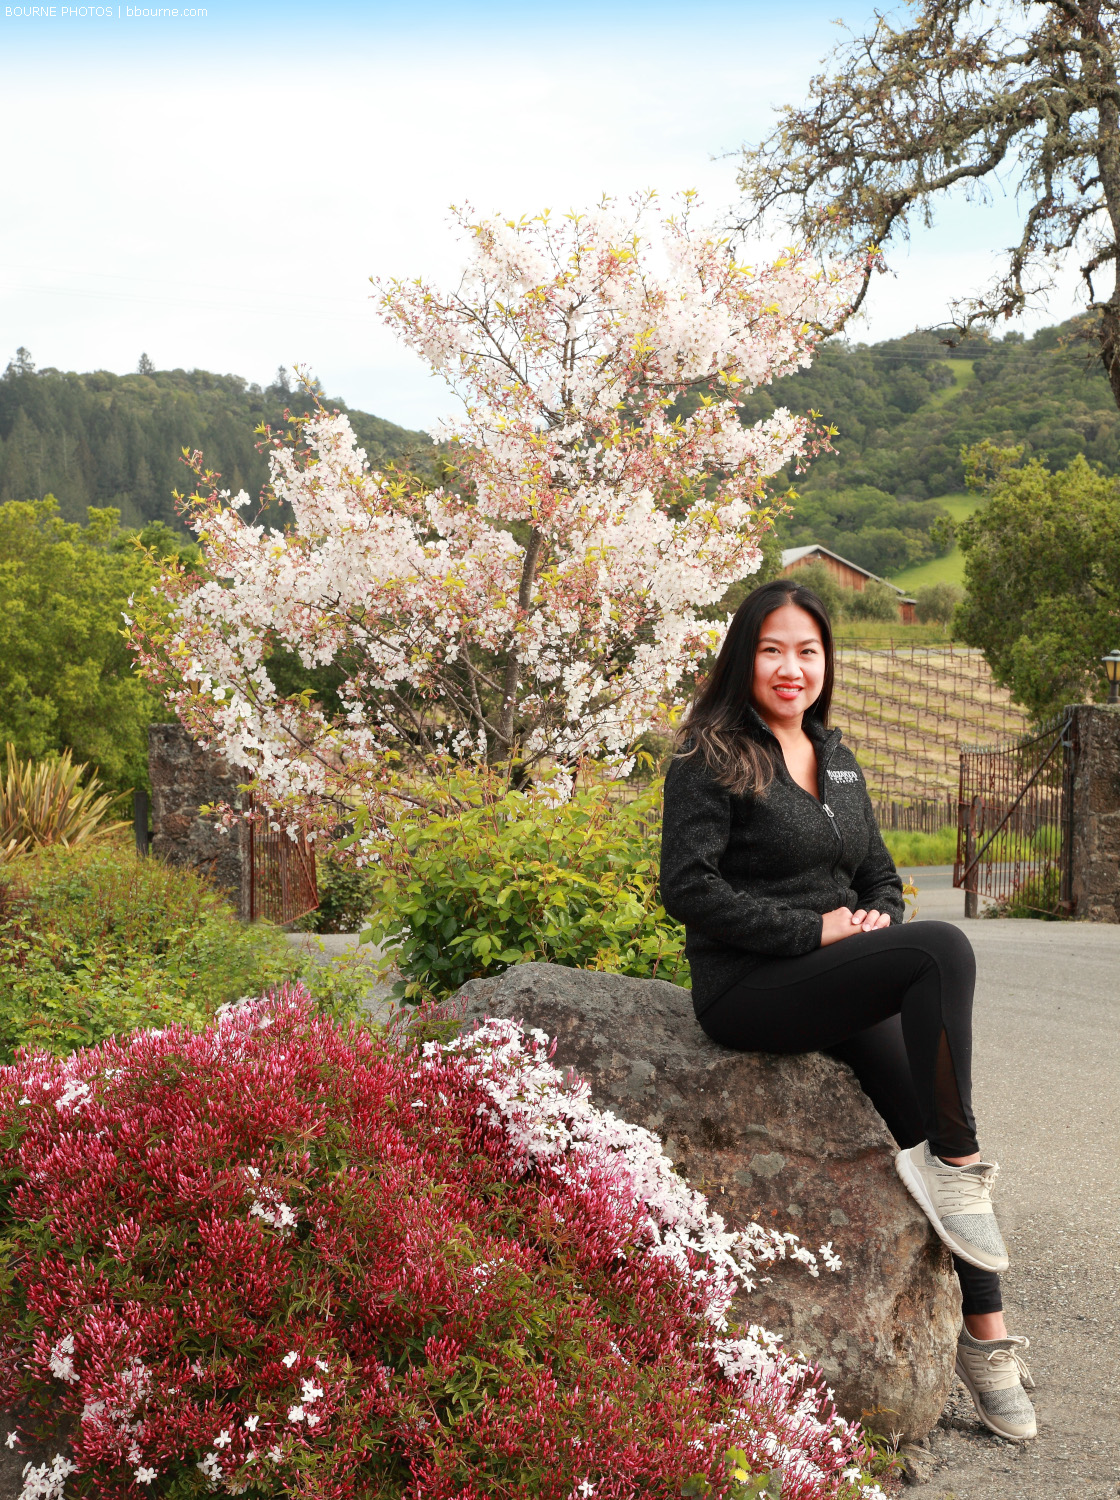 Marjorie posing on a rock surrounded by blooming flowers and plants with vineyard in the background.